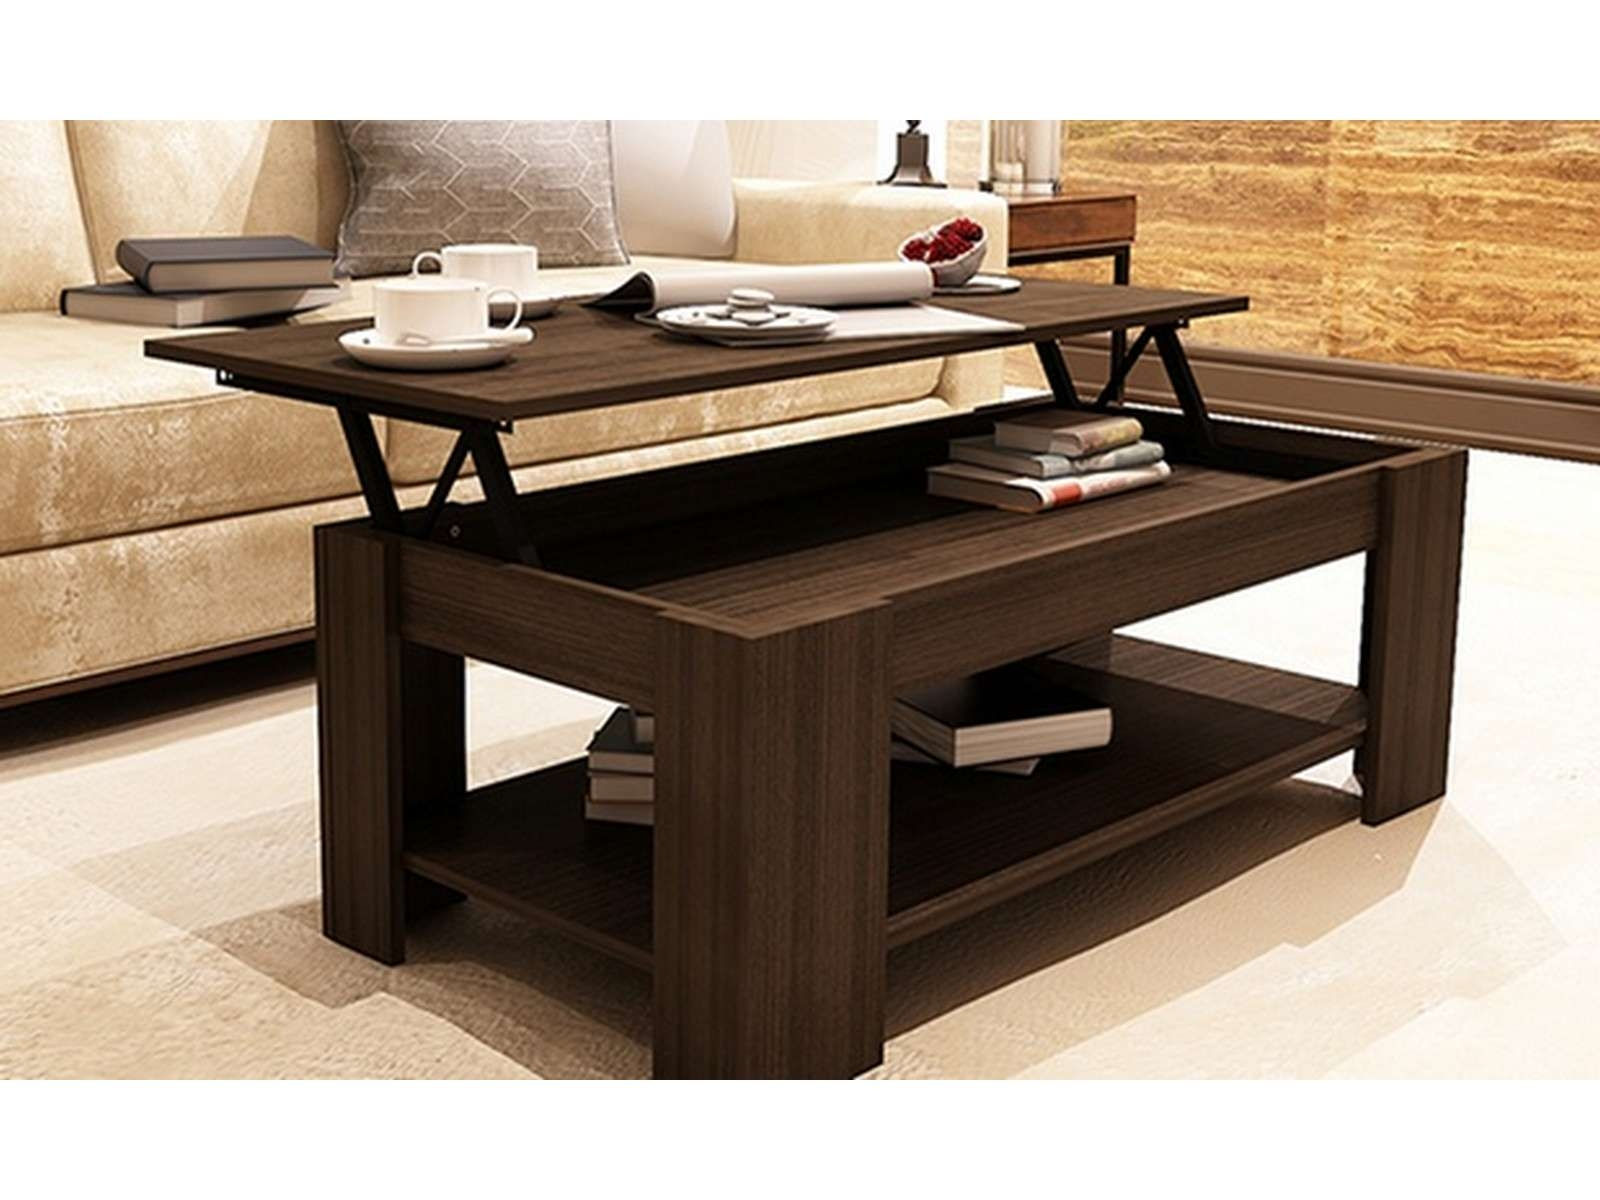 Most Recent Coffee Tables With Lift Top And Storage Throughout Coffee Tables : Essential Home Lift Top Storage Ottoman Solid Wood (View 13 of 20)